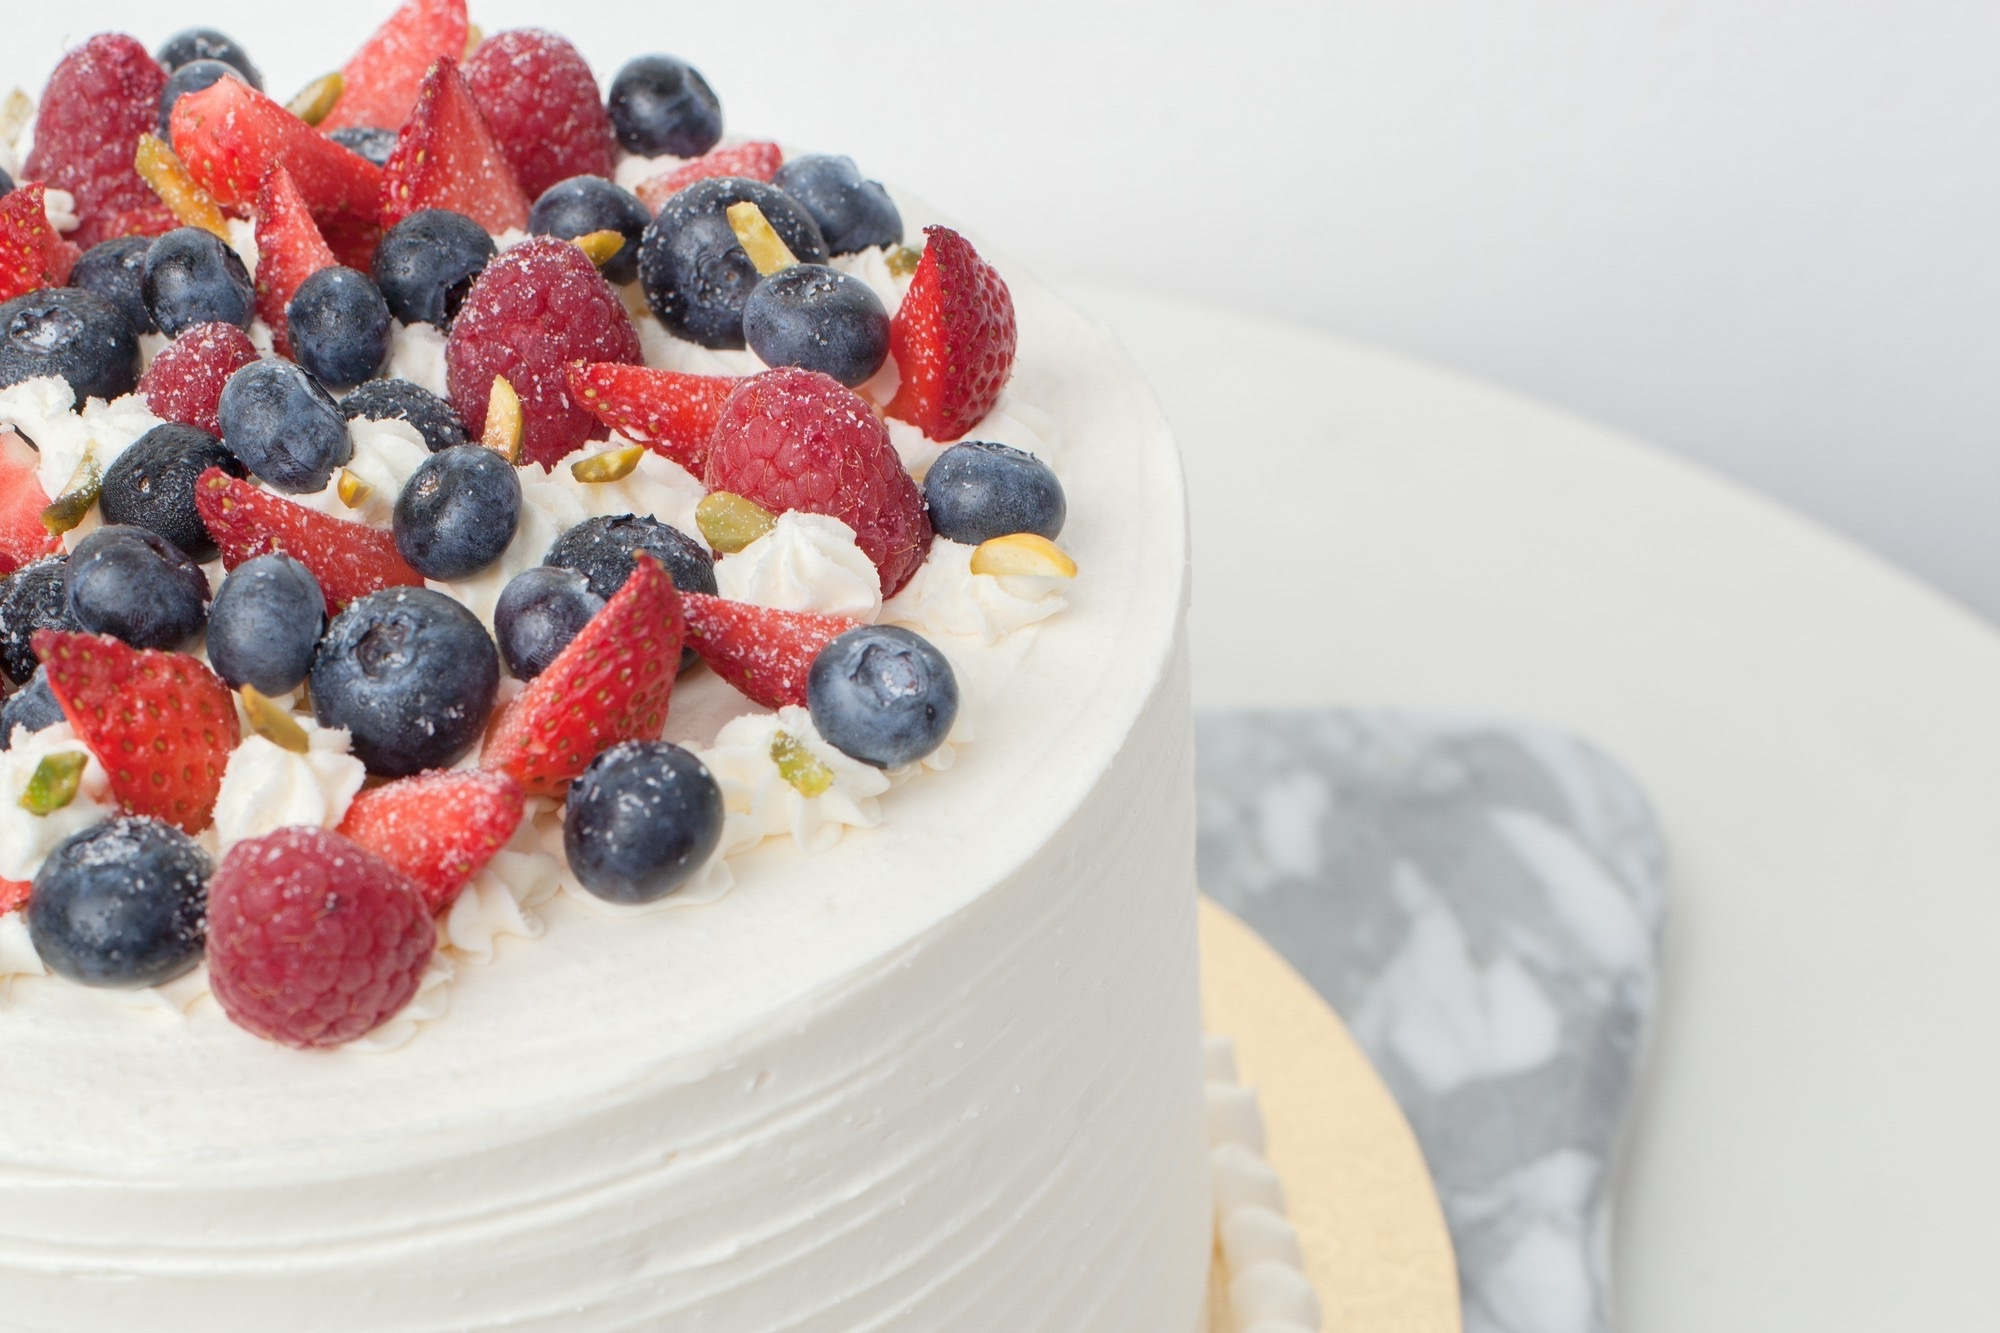 Triple Berry Cake - Ø18 cm - Rp. 800.000,-Ø22 cm - Rp. 1.200.000,-Ø26 cm - Rp. 1.500.000,-Four layers of vanilla genoise filled with crème chantilly,fresh raspberries, blueberries and strawberries. Topped with more berries and pistachio slices.